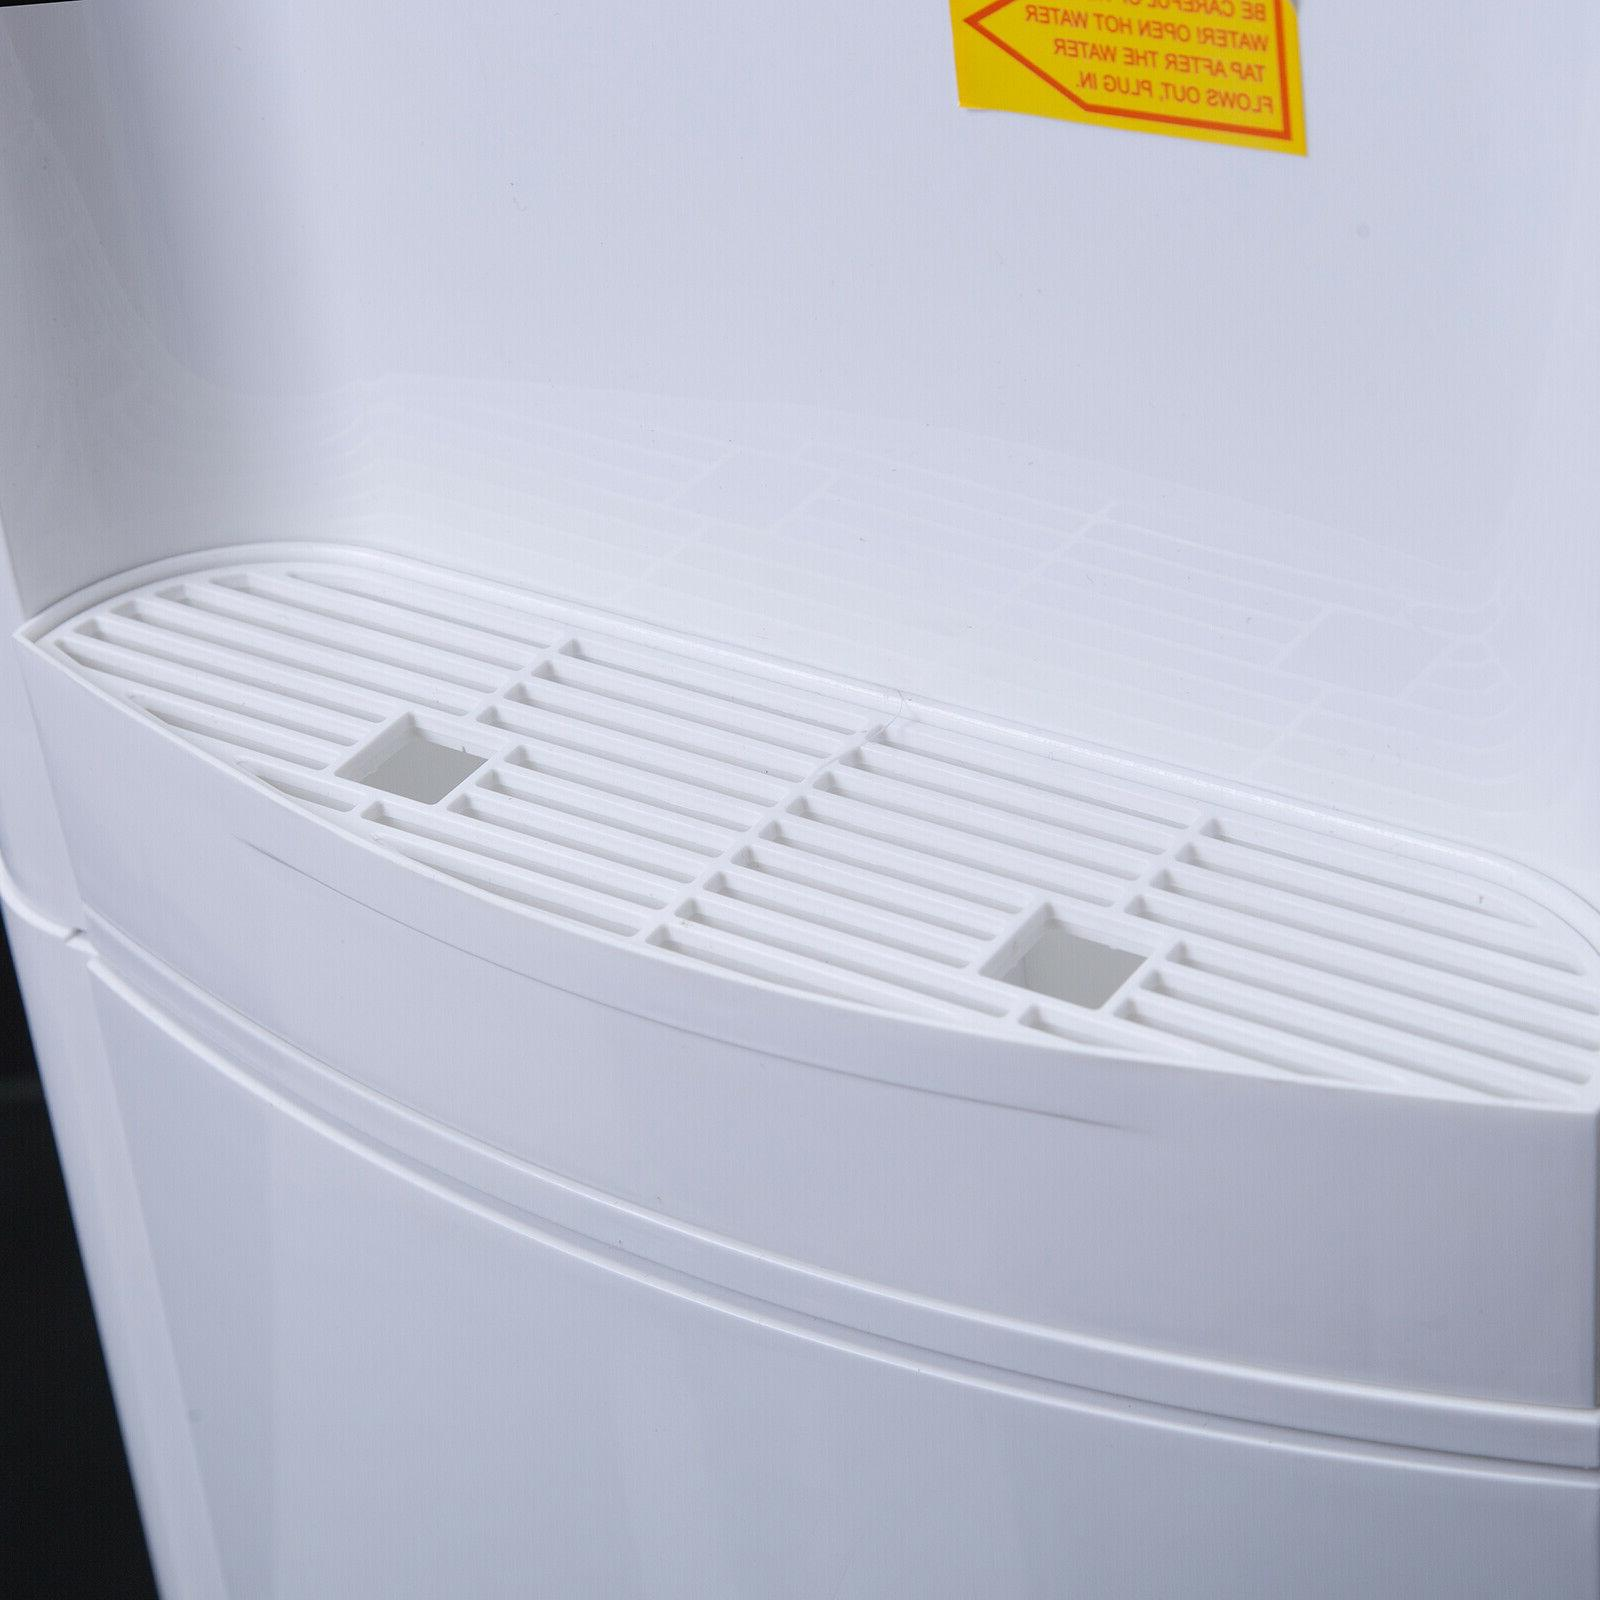 Water Cooler Dispenser Loading 5 Electric Hot/Cold Water White